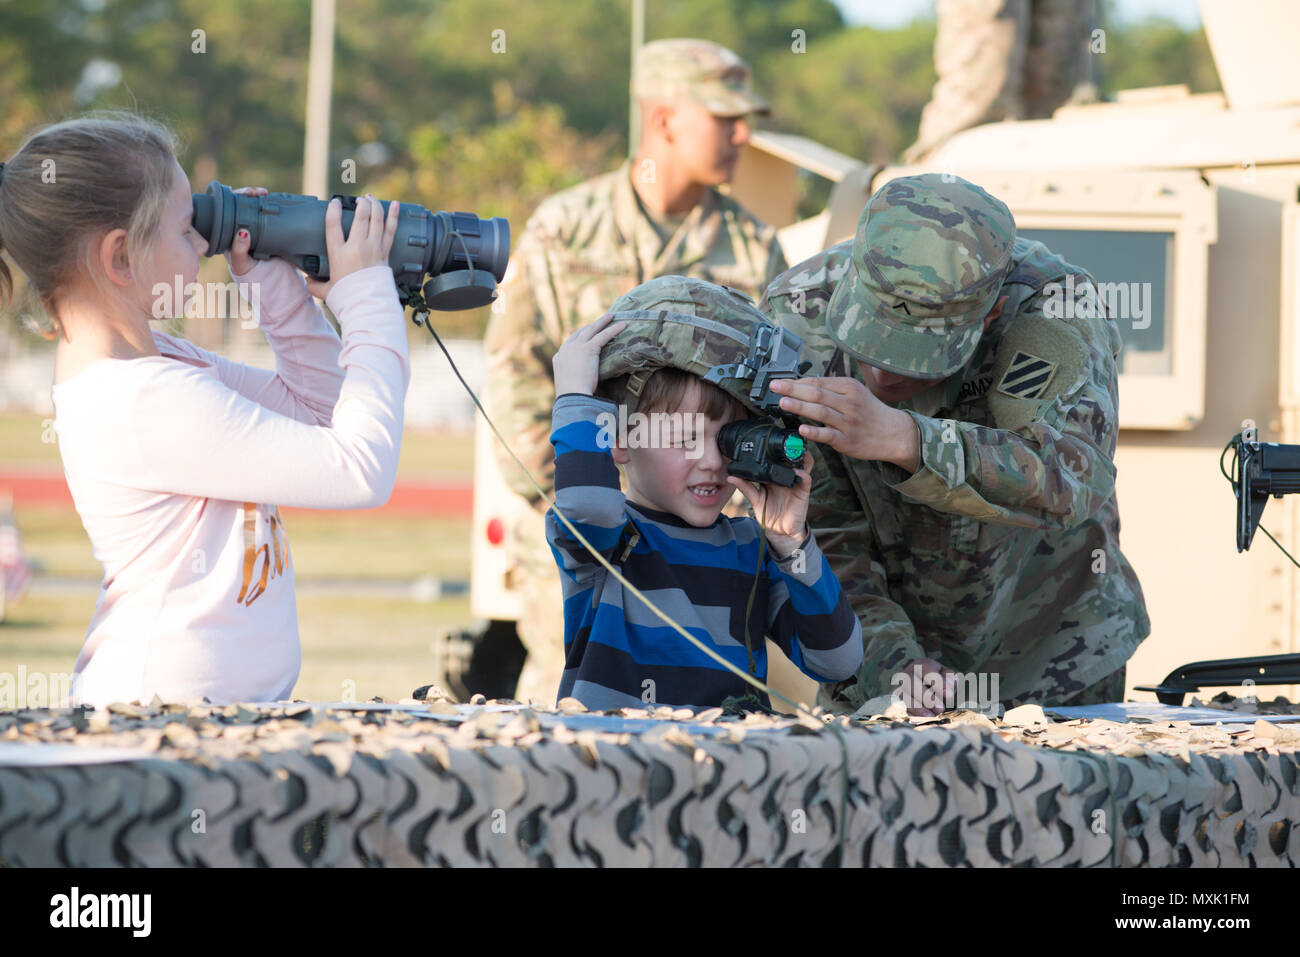 3rd Infantry Division family members takes peer through optics at a static display during Marne Week on Fort Stewart Nov. 15, 2016. Marne Week is a week of special activities for soldiers and family members in celebration of the 99th anniversary of the 3rd Infantry Division. (Photo by LTC Brian J. Fickel) Stock Photo